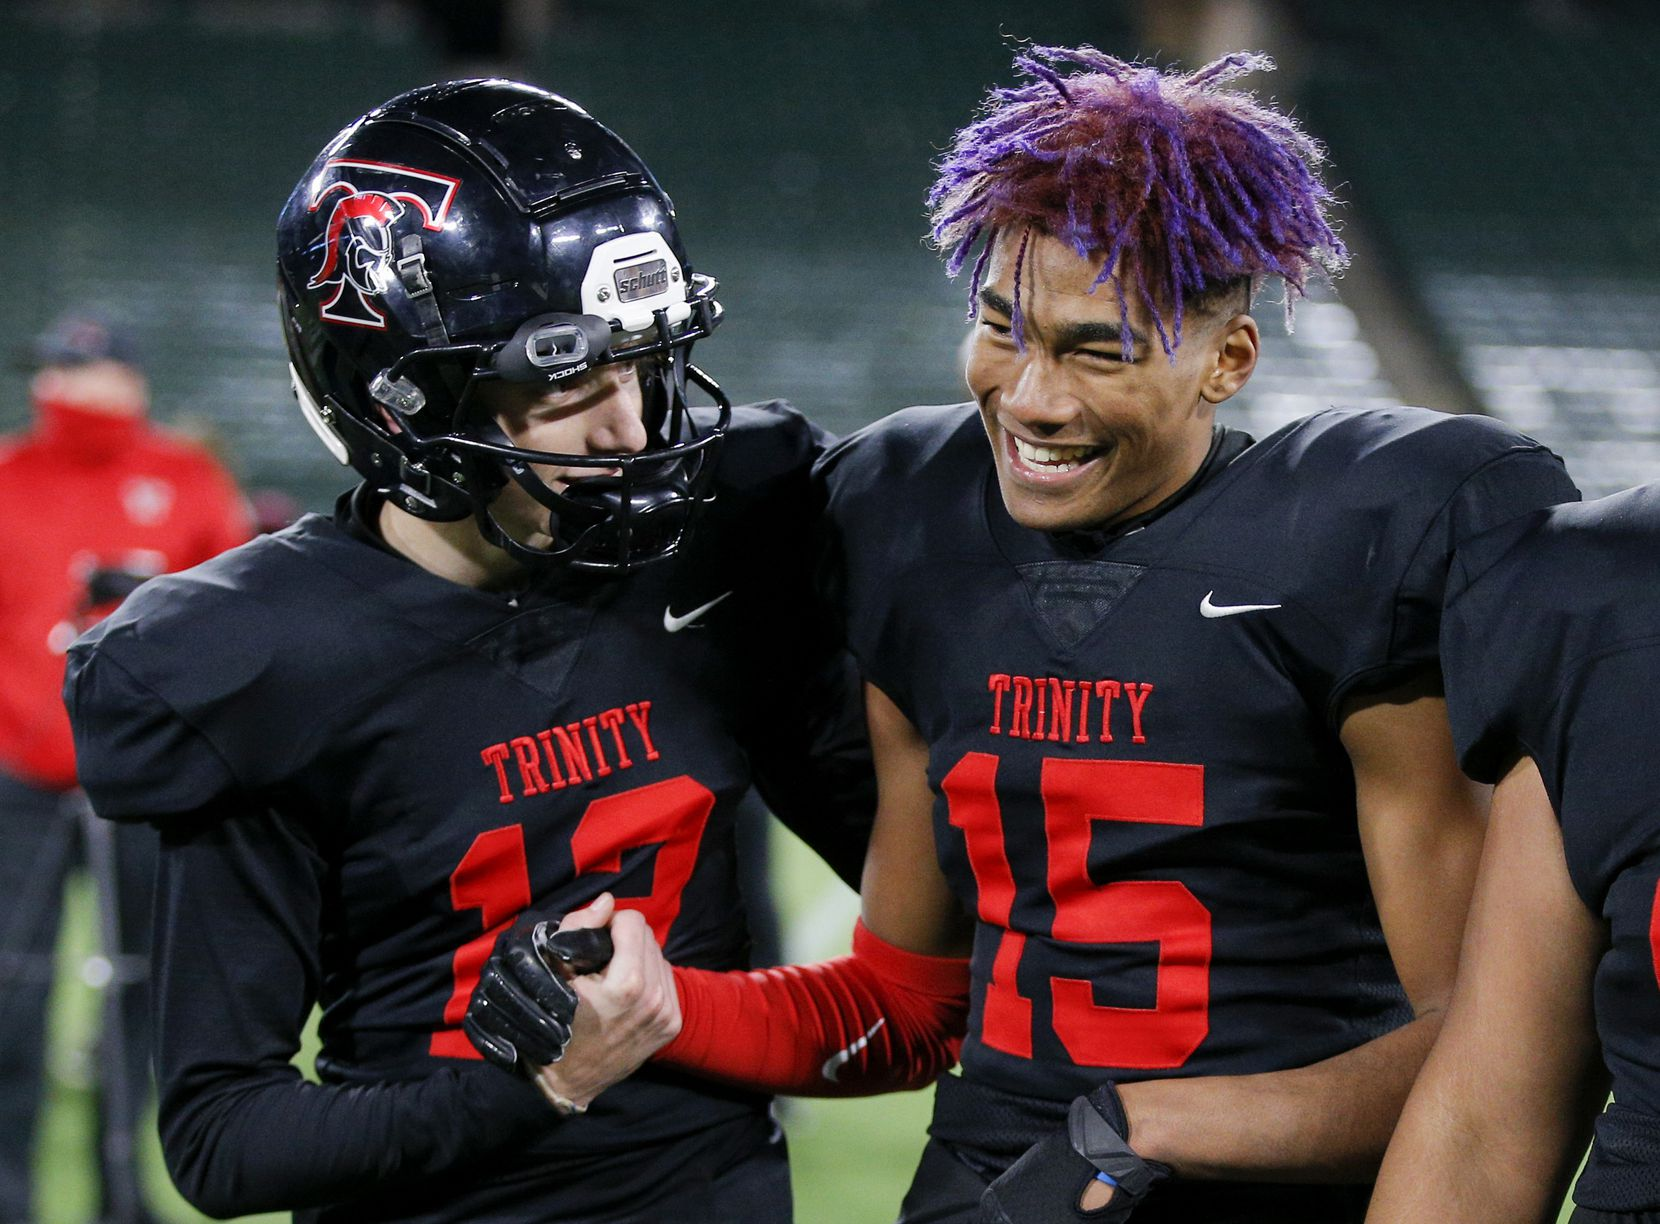 Euless Trinity junior quarterback Cade Barthelemess (12) and junior wide receiver Pofele Ashlock (15) celebrate a 49-45 win over Allen after a high school Class 6A Division I Region I semifinal football game at Globe Life Park in Arlington, Saturday, December 26, 2020. Trinity won 49-45. (Brandon Wade/Special Contributor)